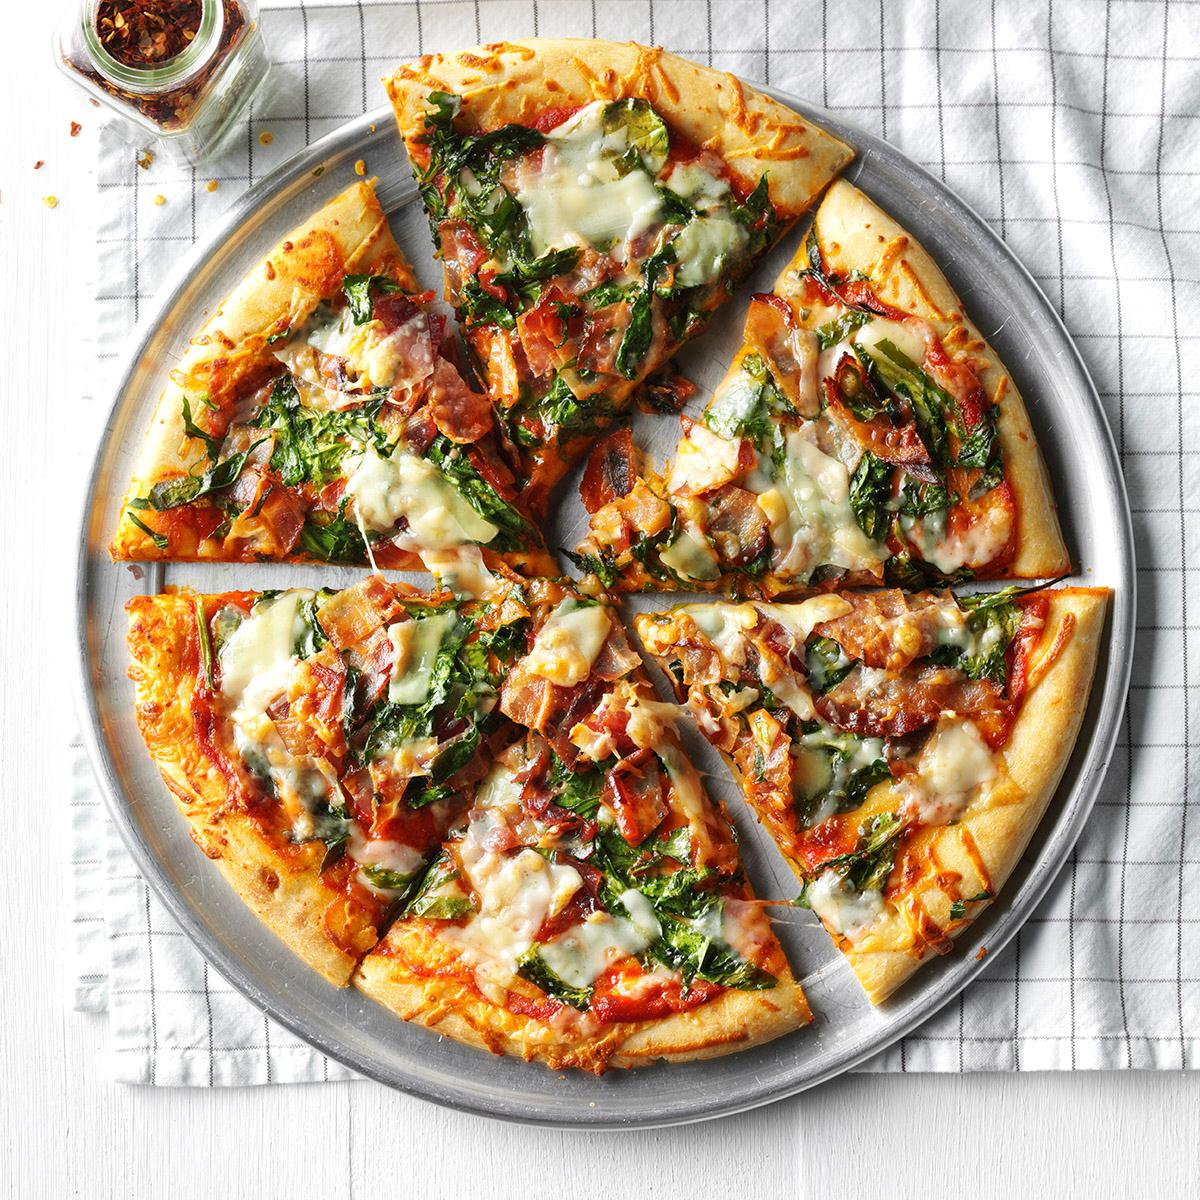 Bacon and Spinach Pizza image